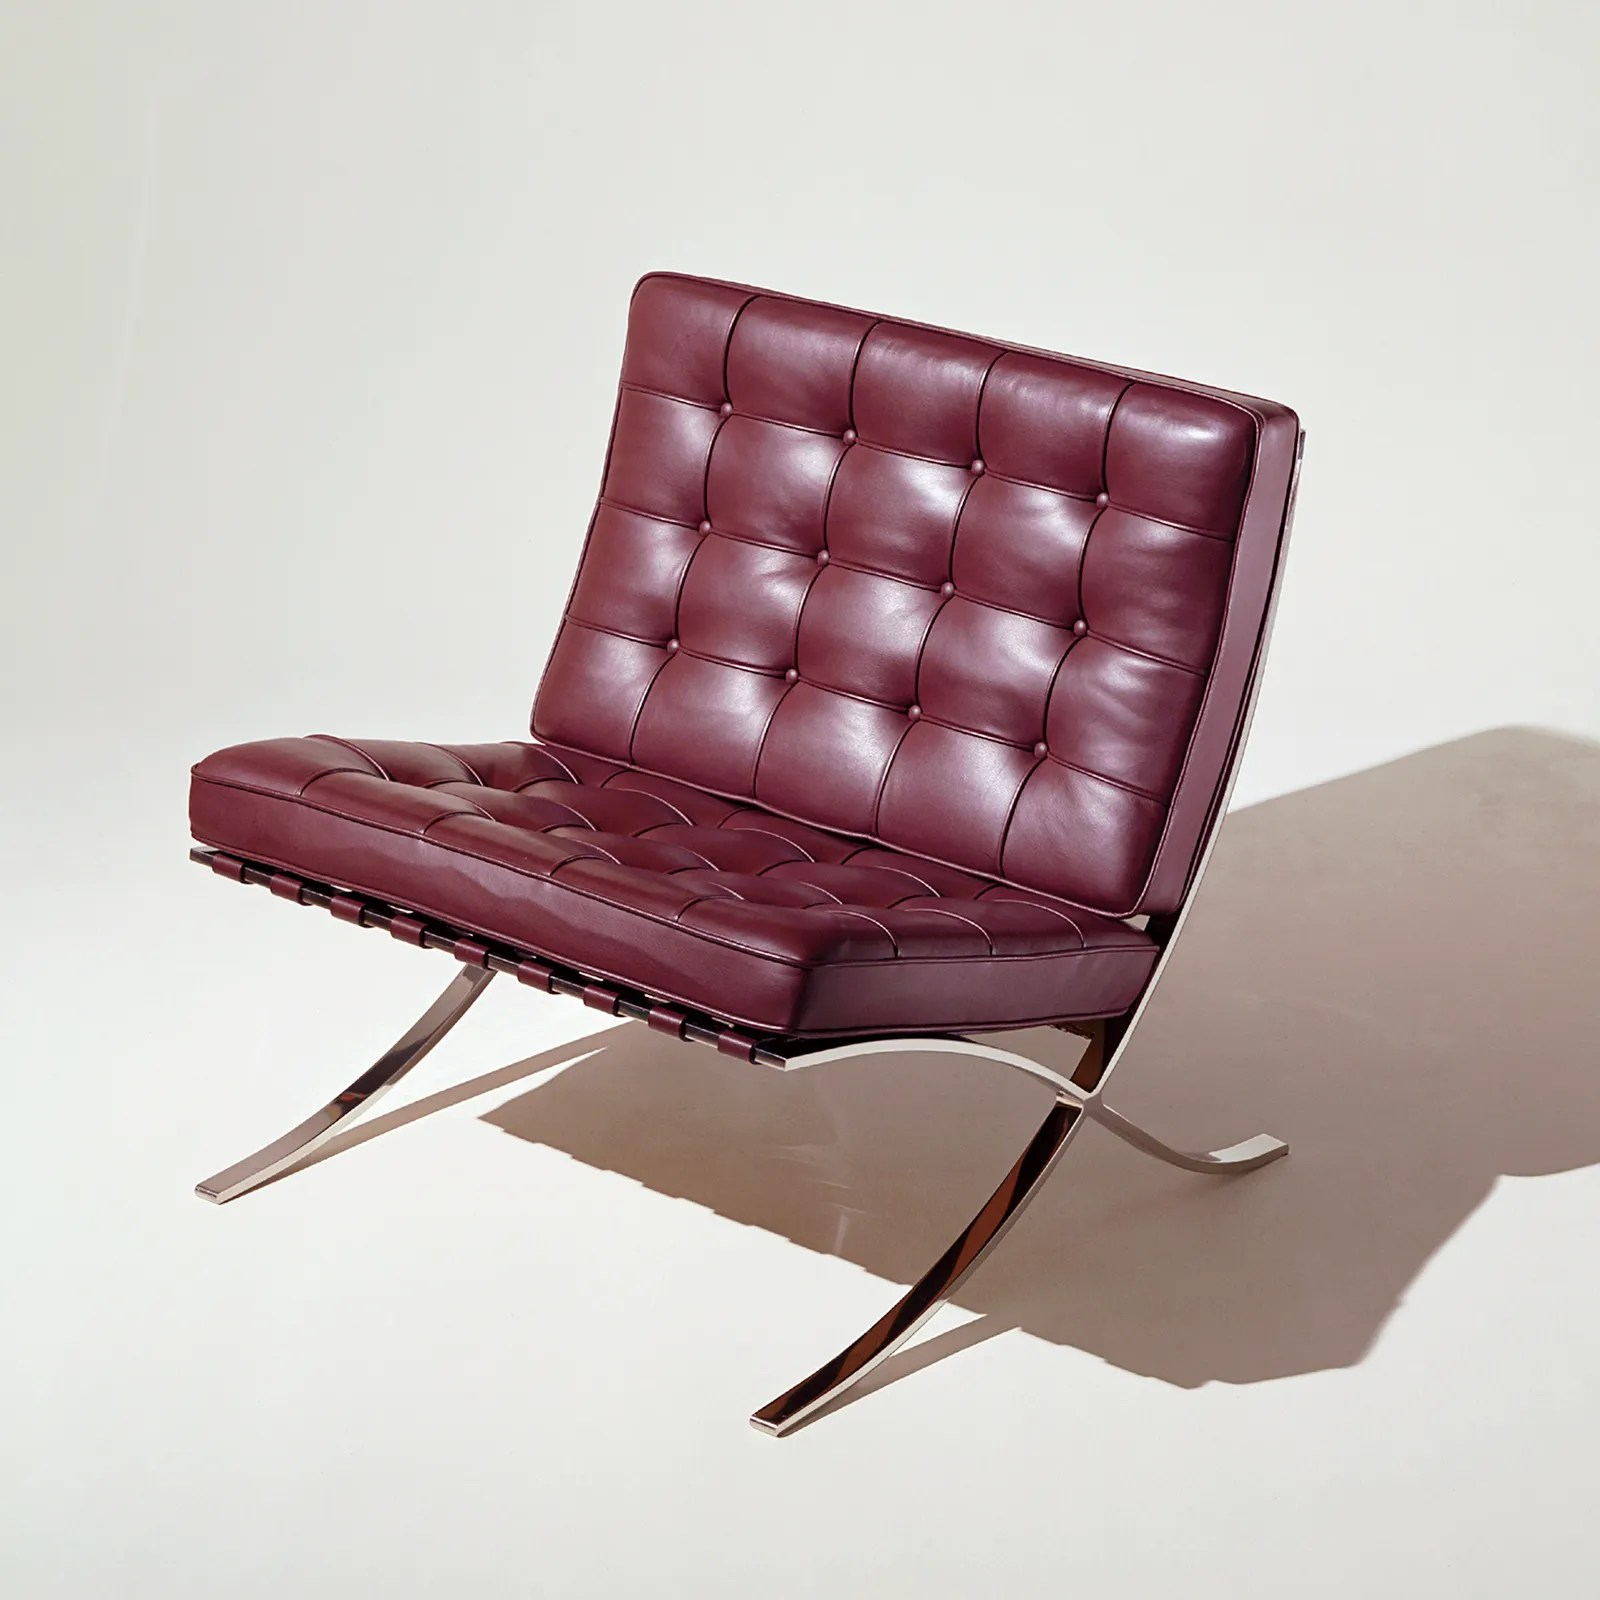 Beautiful Chairs These Are The 12 Most Iconic Chairs Of All Time Gq